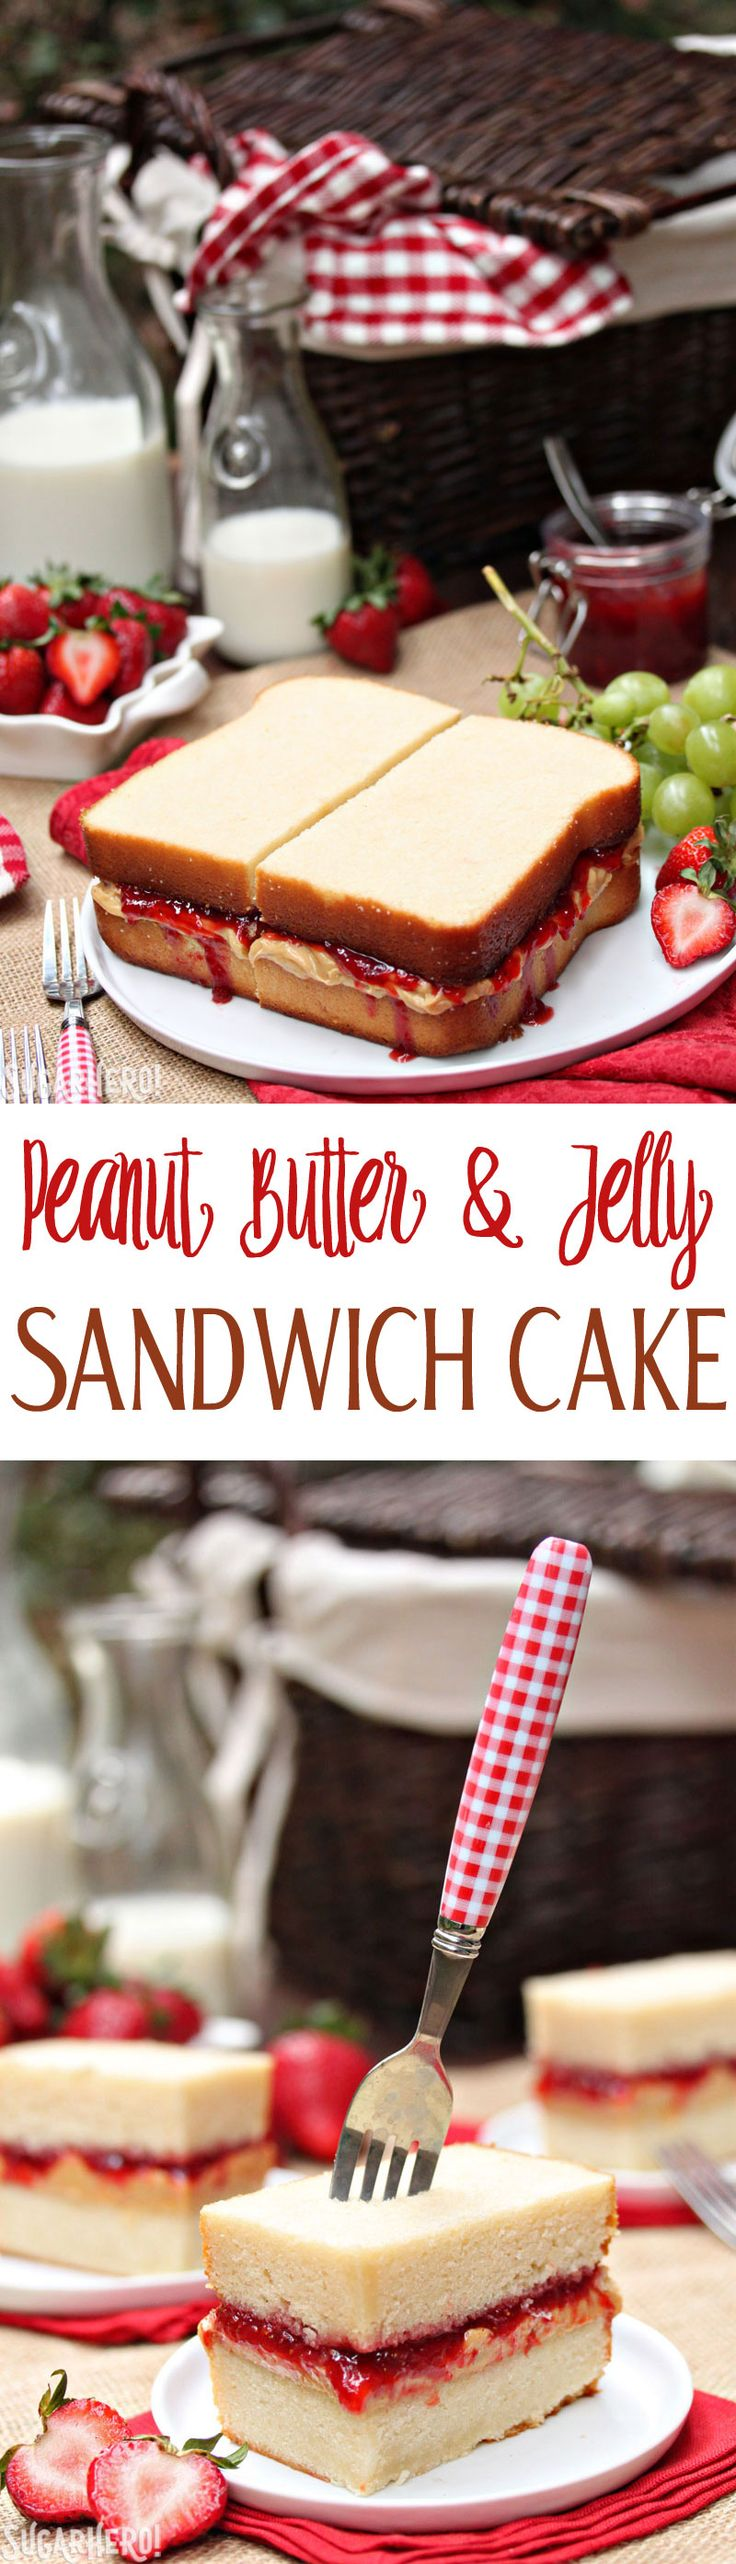 Peanut Butter and Jelly Sandwich Cake - made with pound cake, peanut butter frosting, and homemade jam! | From SugarHero.com